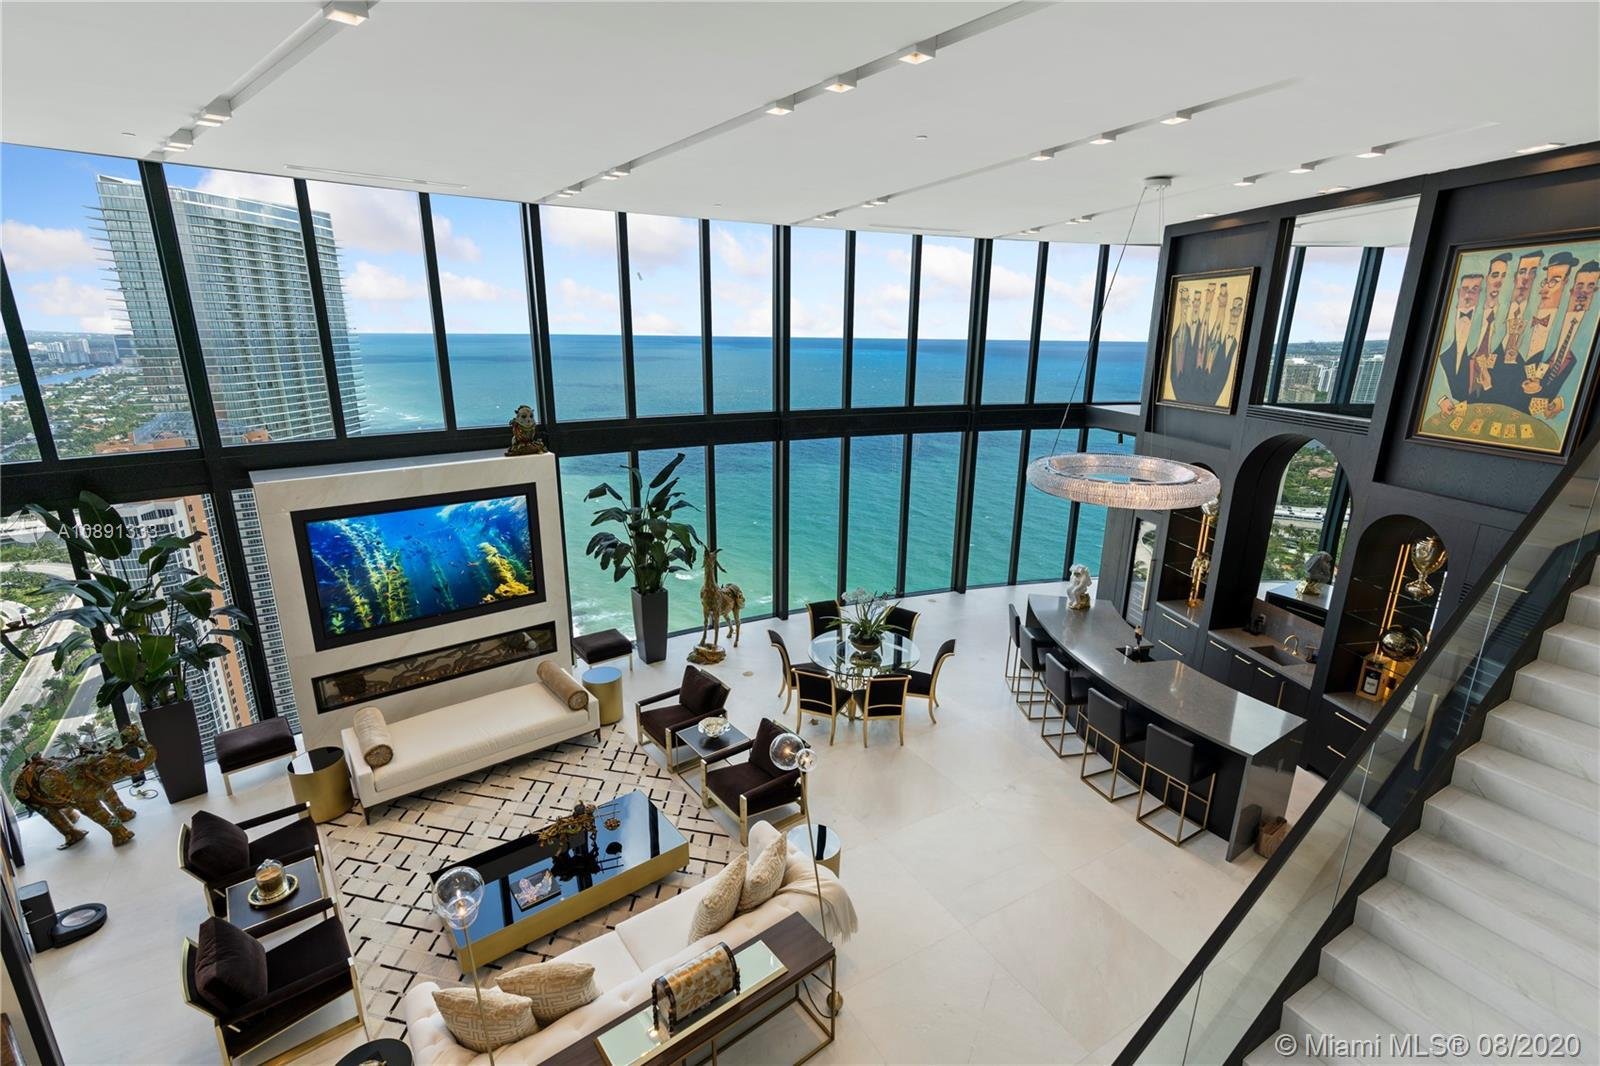 18555 Collins Ave 4405, Sunny Isles Beach, FL, 33160